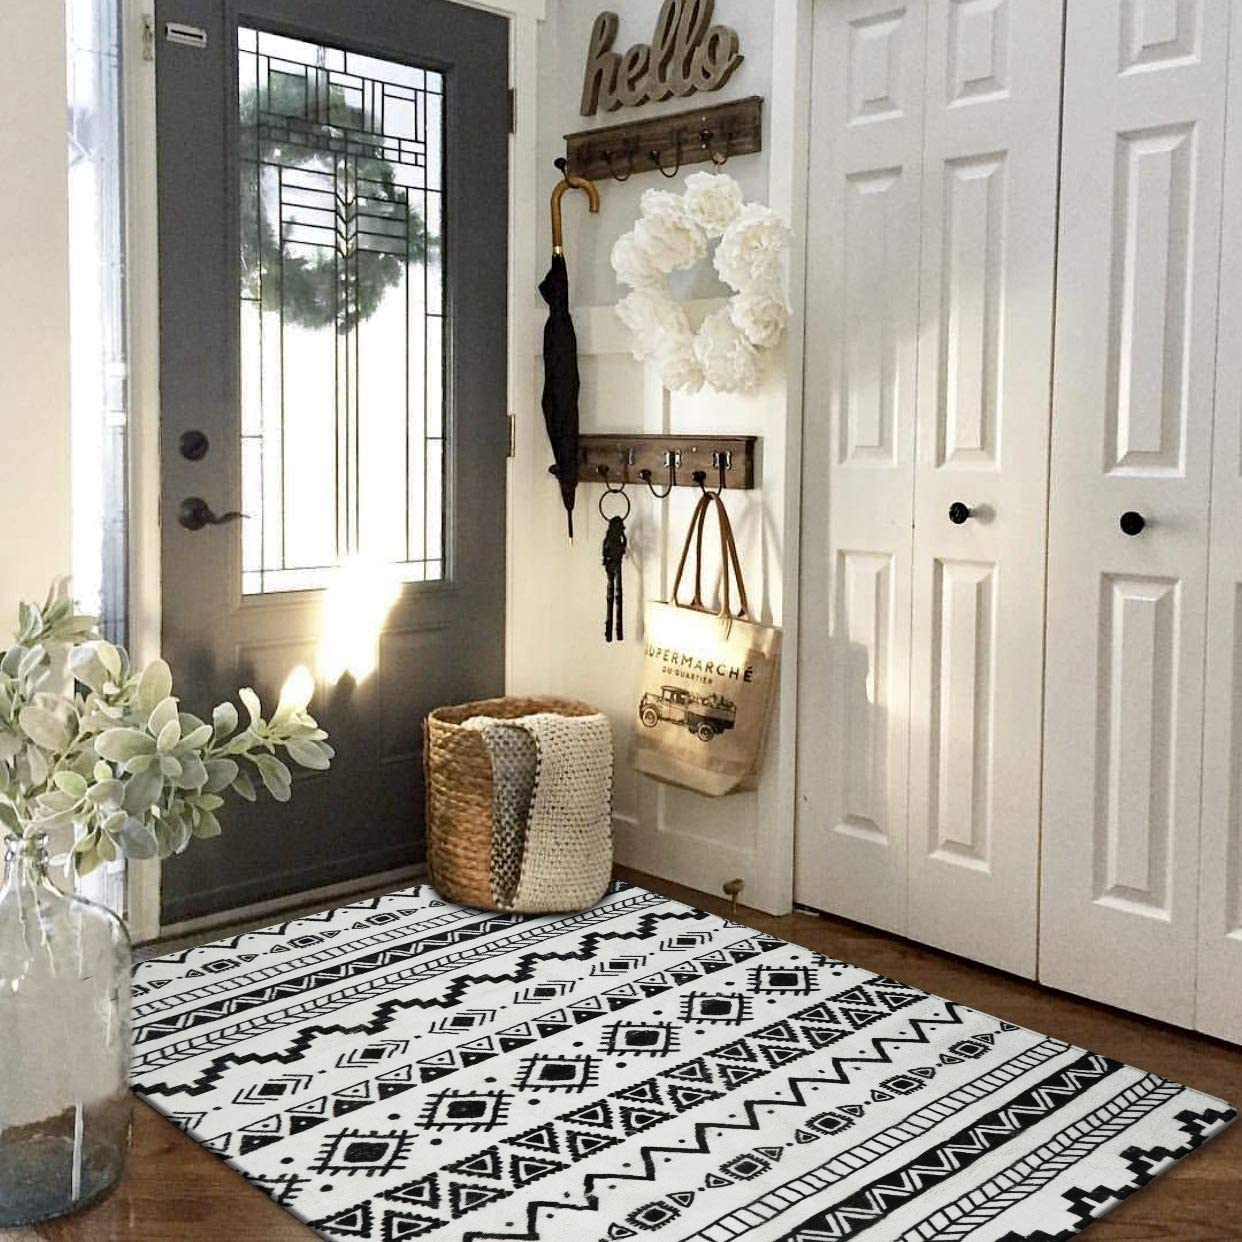 Lahome Bohemian Geometric Area Rug - 5' Non-Slip Faux Wool 3' Max 84% OFF Max 55% OFF X